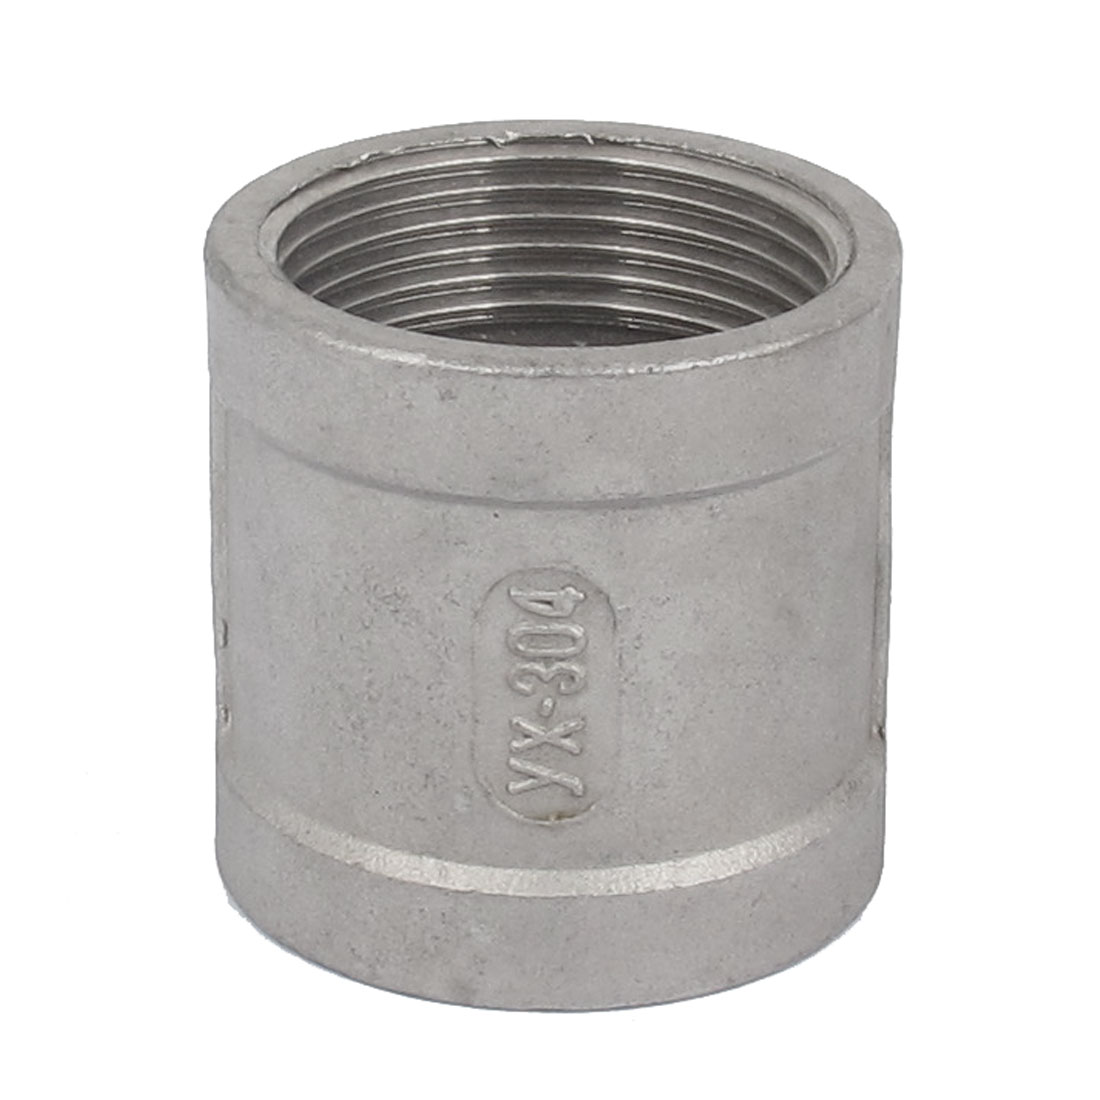 Female Thread Straight Rod Coupling Connector Pipe Fittings 1 1/4 BSP Gray